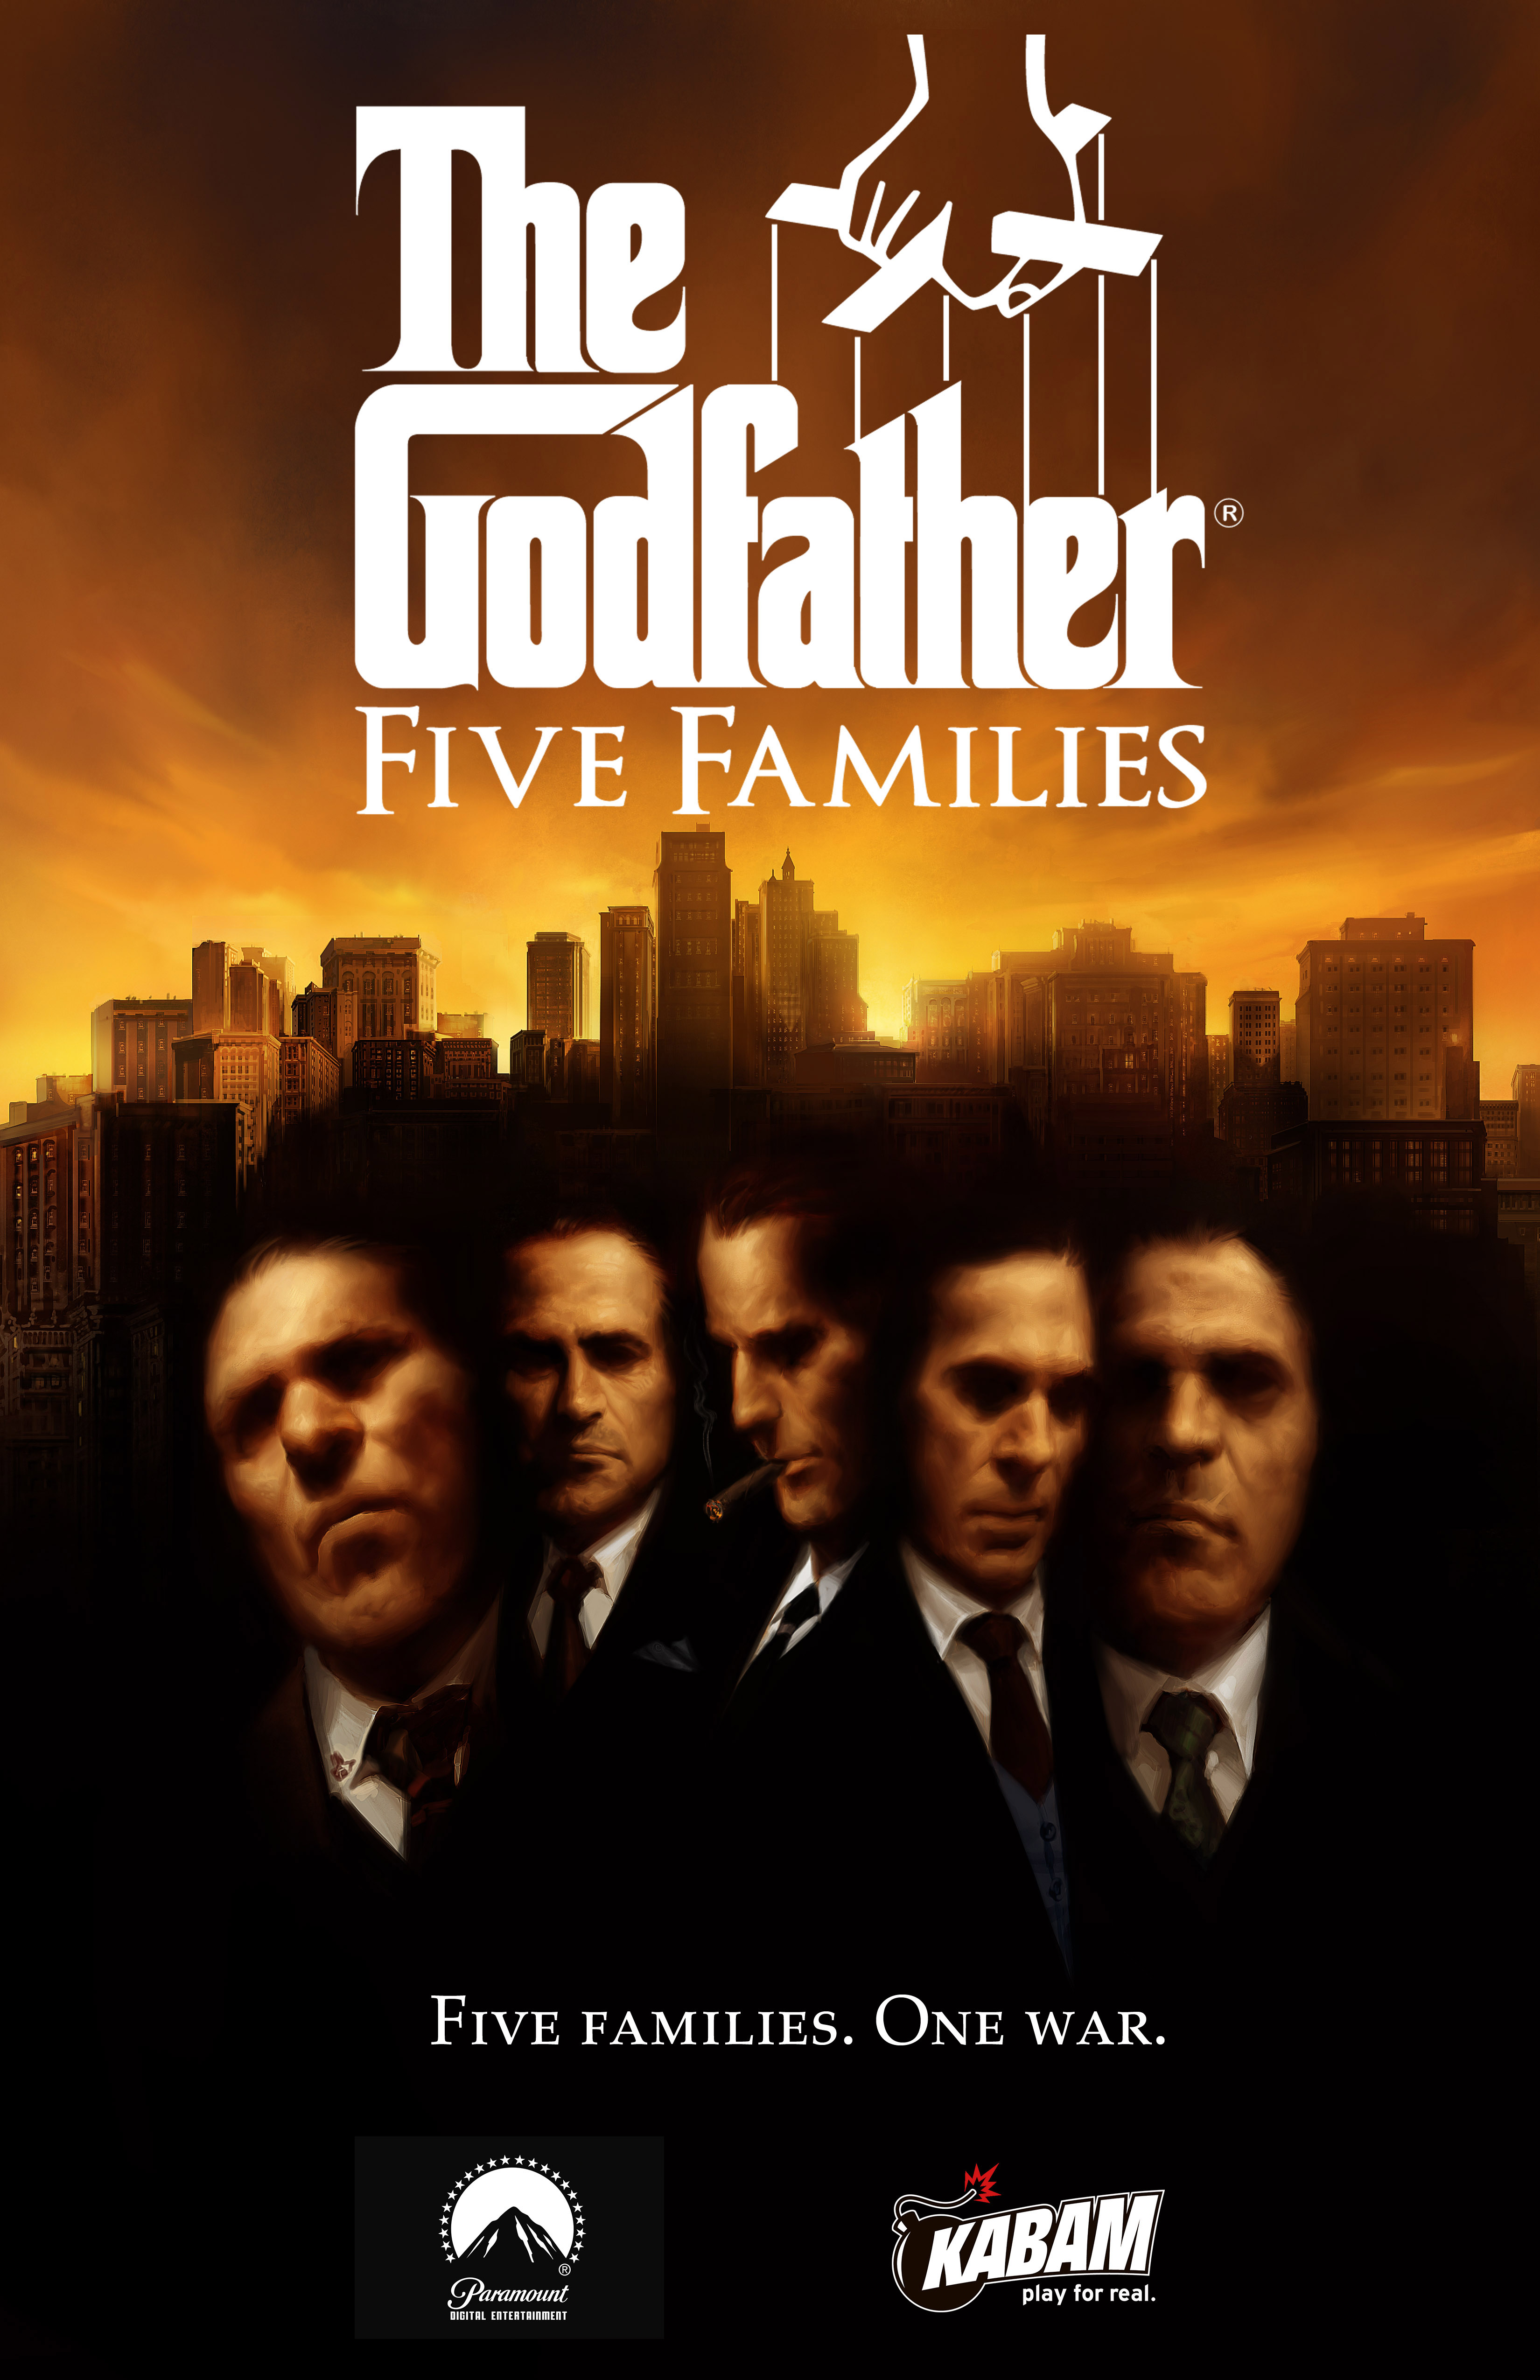 The godfather five families the godfather wiki fandom powered the godfather five families thecheapjerseys Gallery